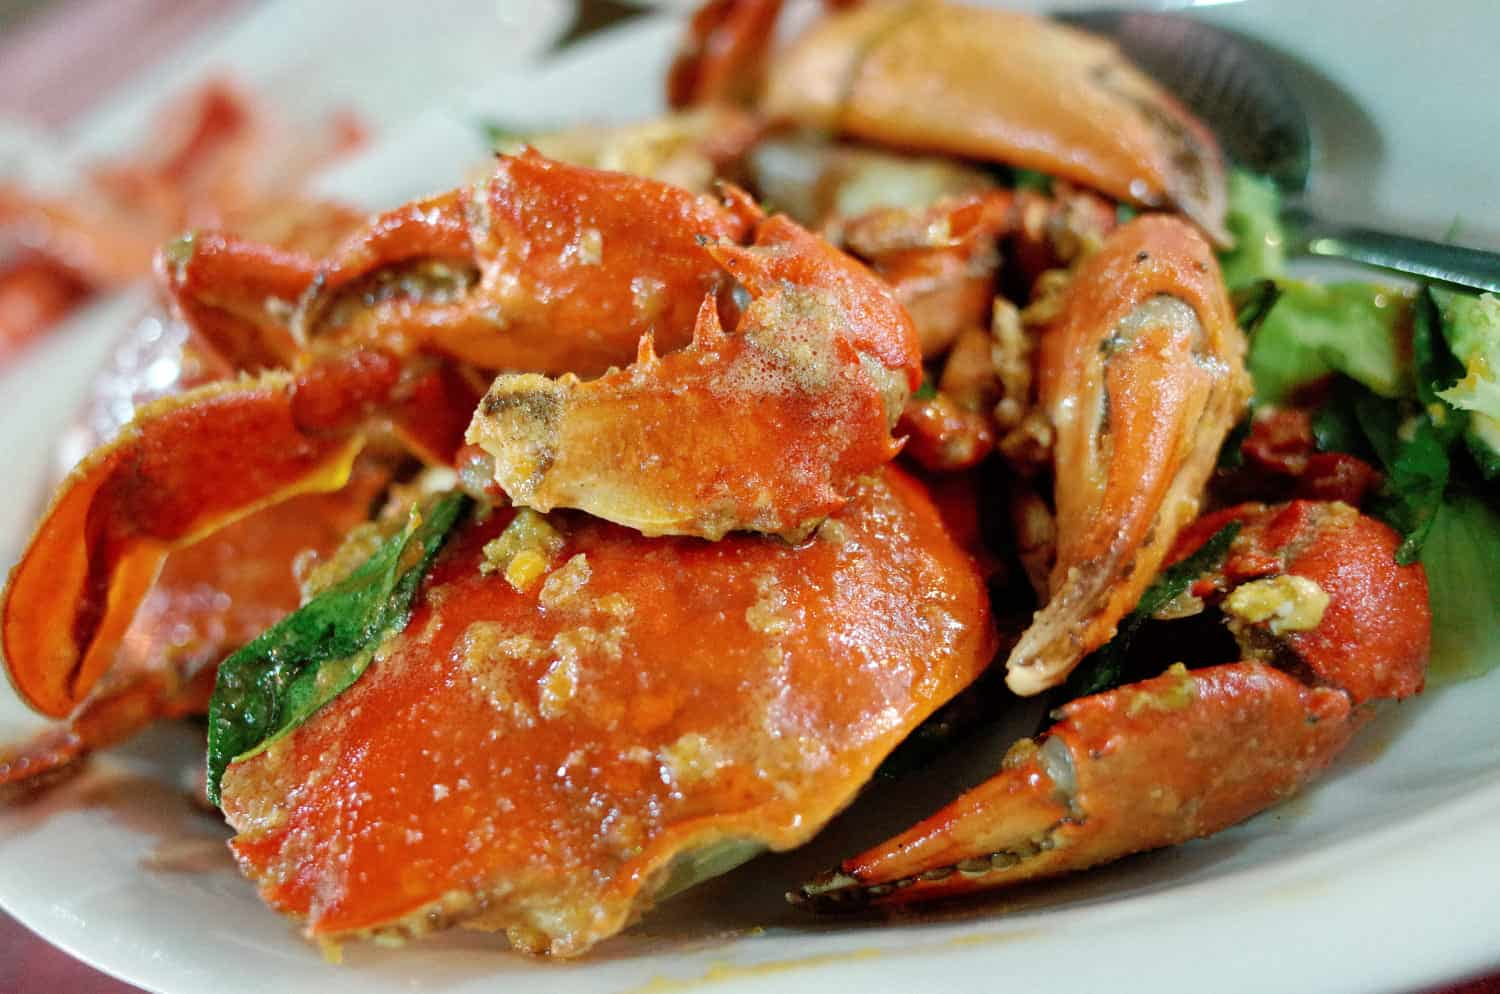 Seafood is one of the most highly prized cuisines worldwide